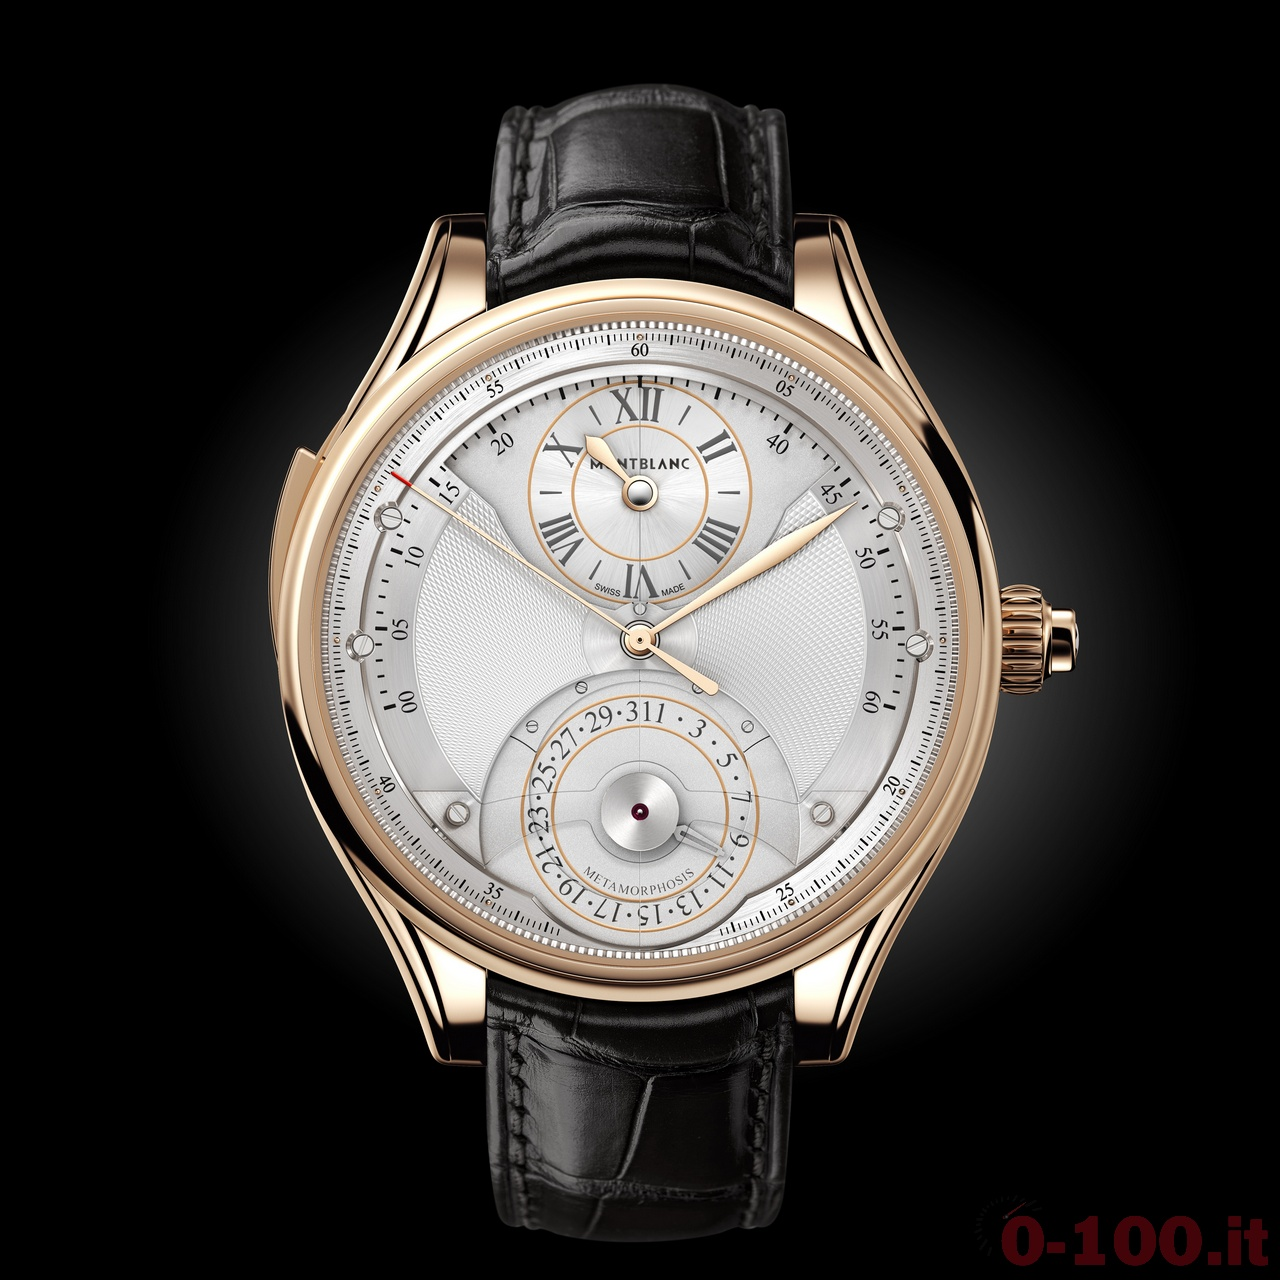 montblanc-metamorphosis-ii-ref-112442-limited-edition-0-100_5